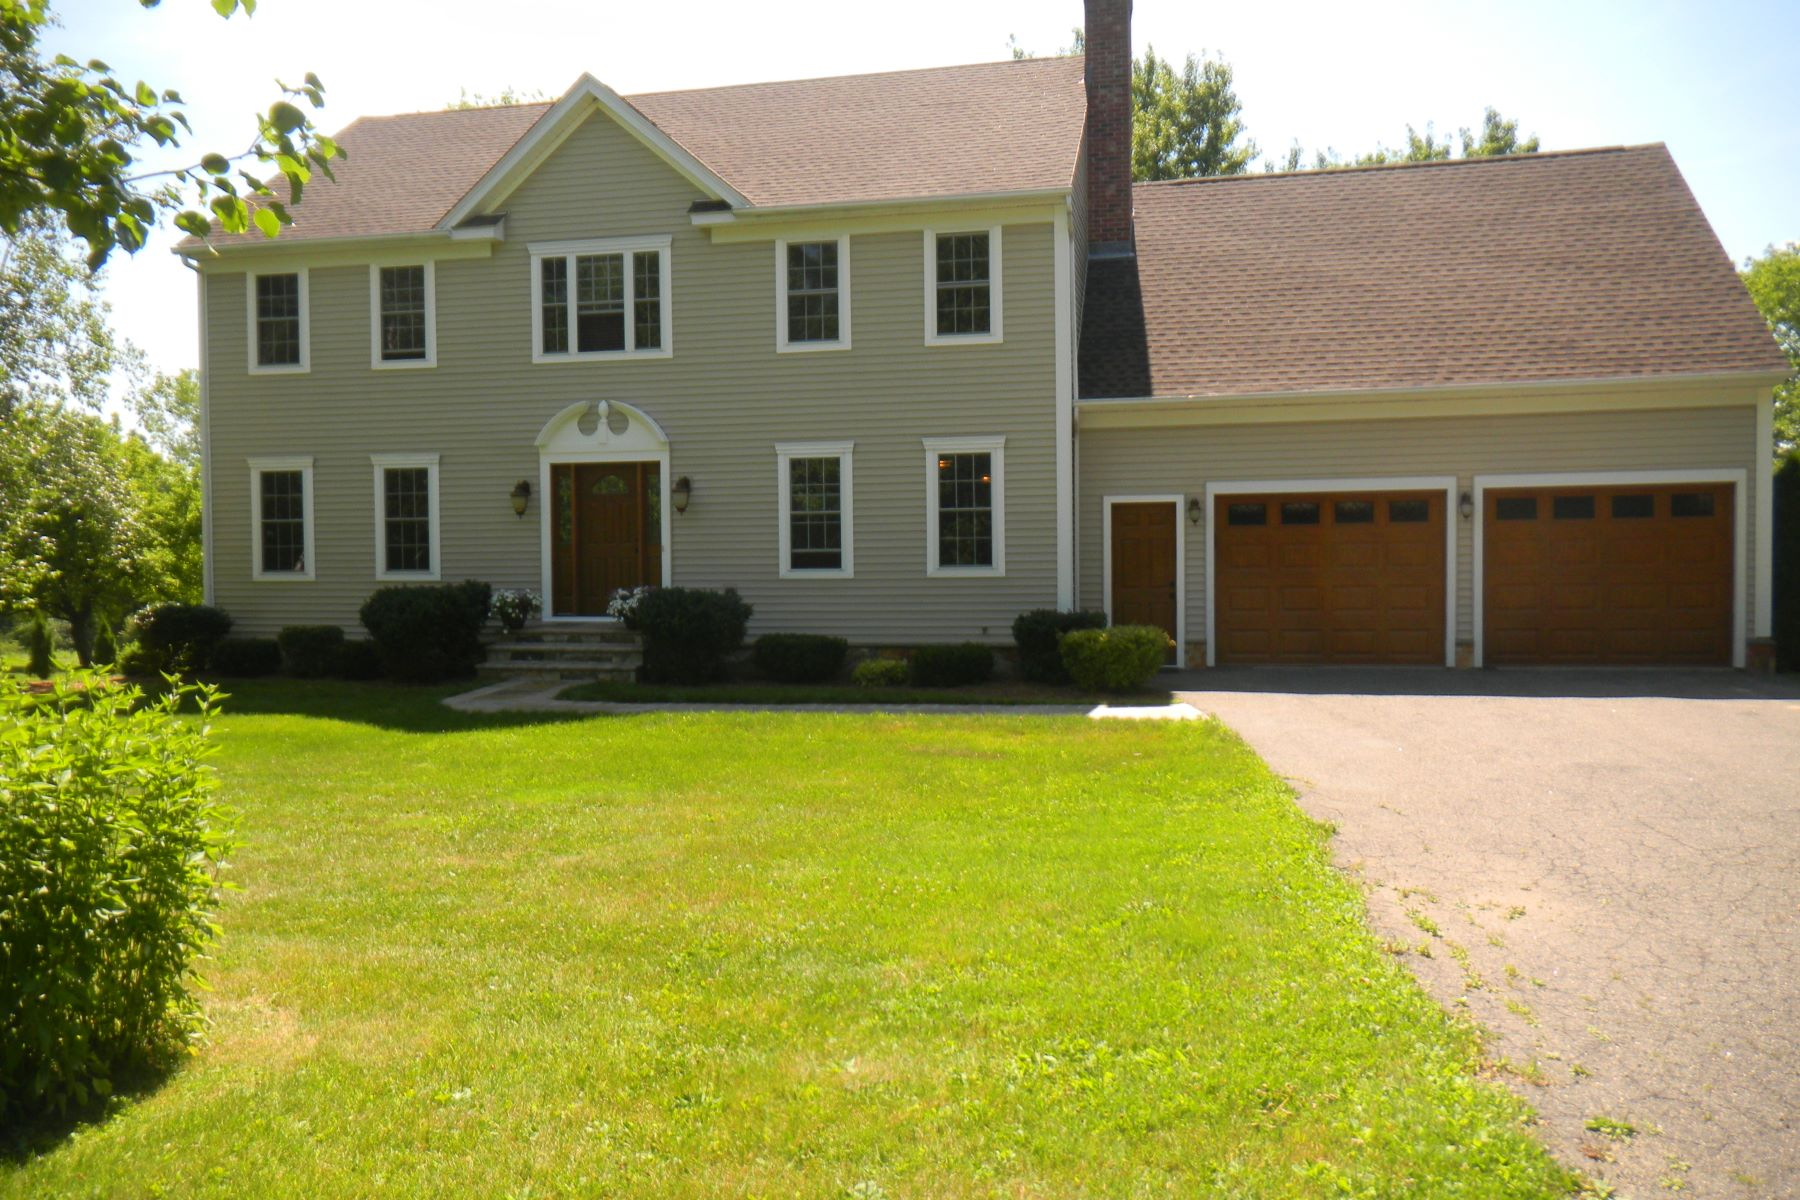 Single Family Home for Sale at Classic and Stylish Goshen Colonial 192 Beach St Goshen, Connecticut, 06756 United States